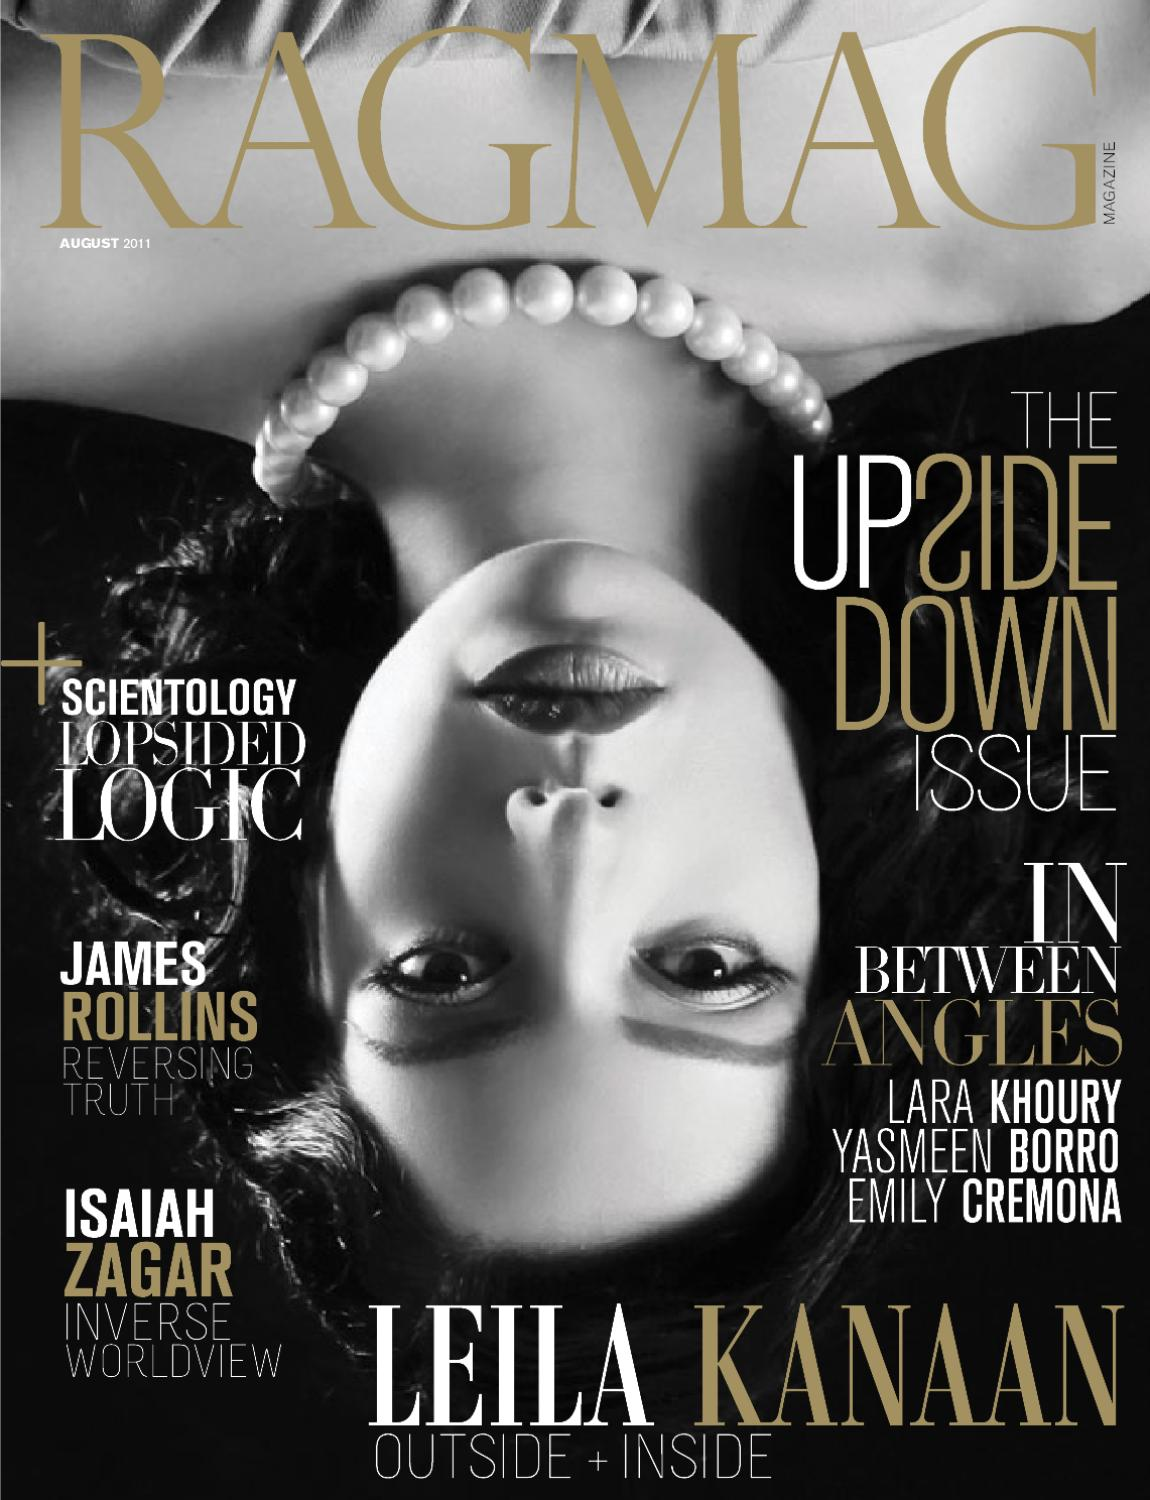 RAGMAG Upside Down Issue | August 2011 | Issue#15